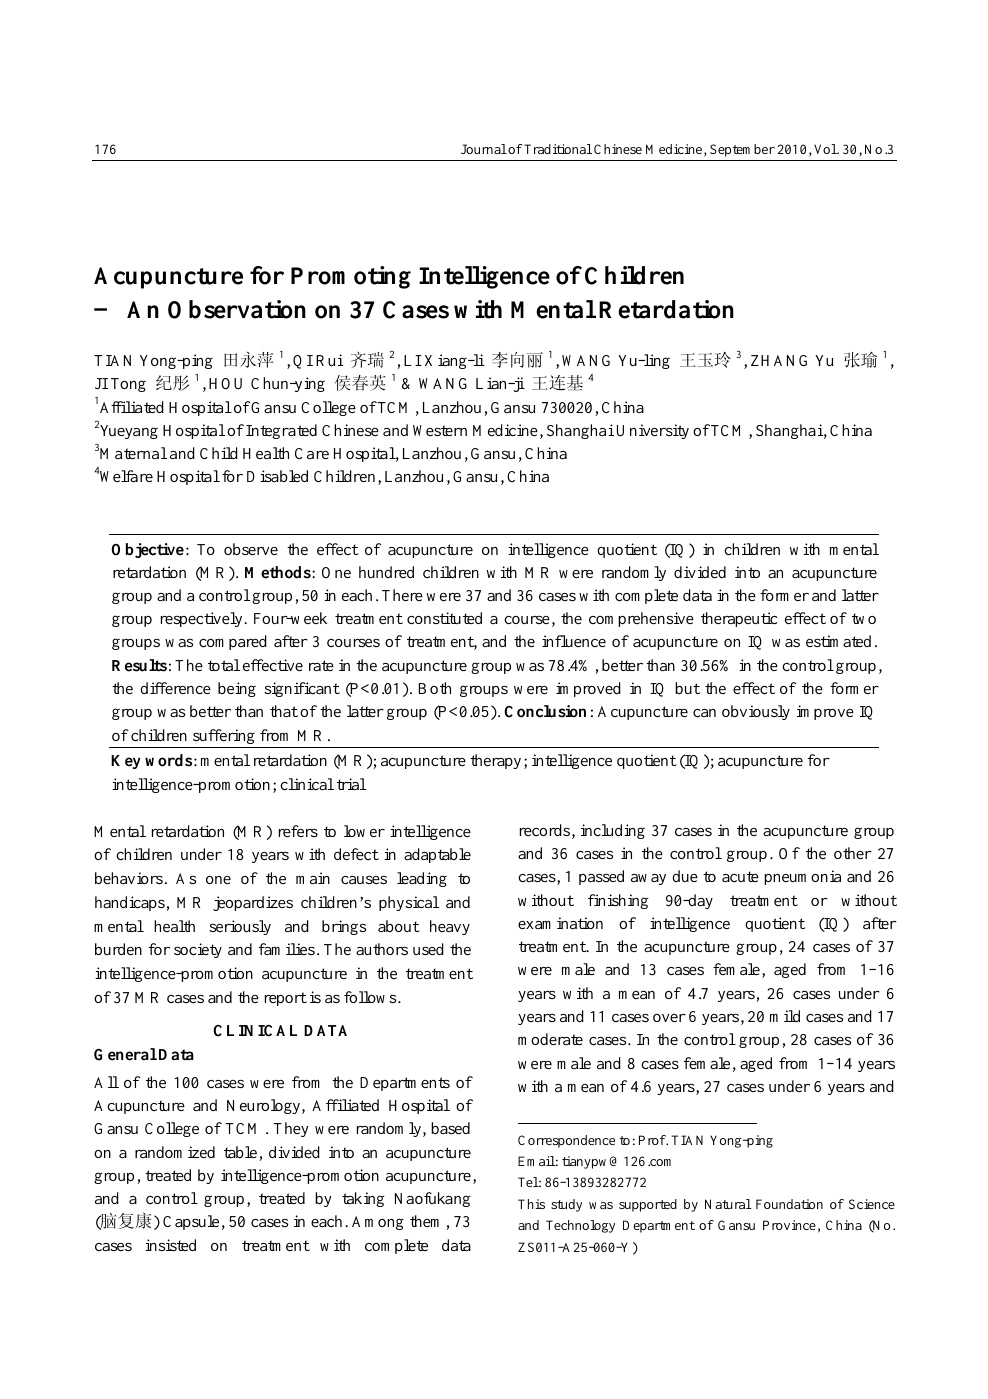 Acupuncture for Promoting Intelligence of Children — An